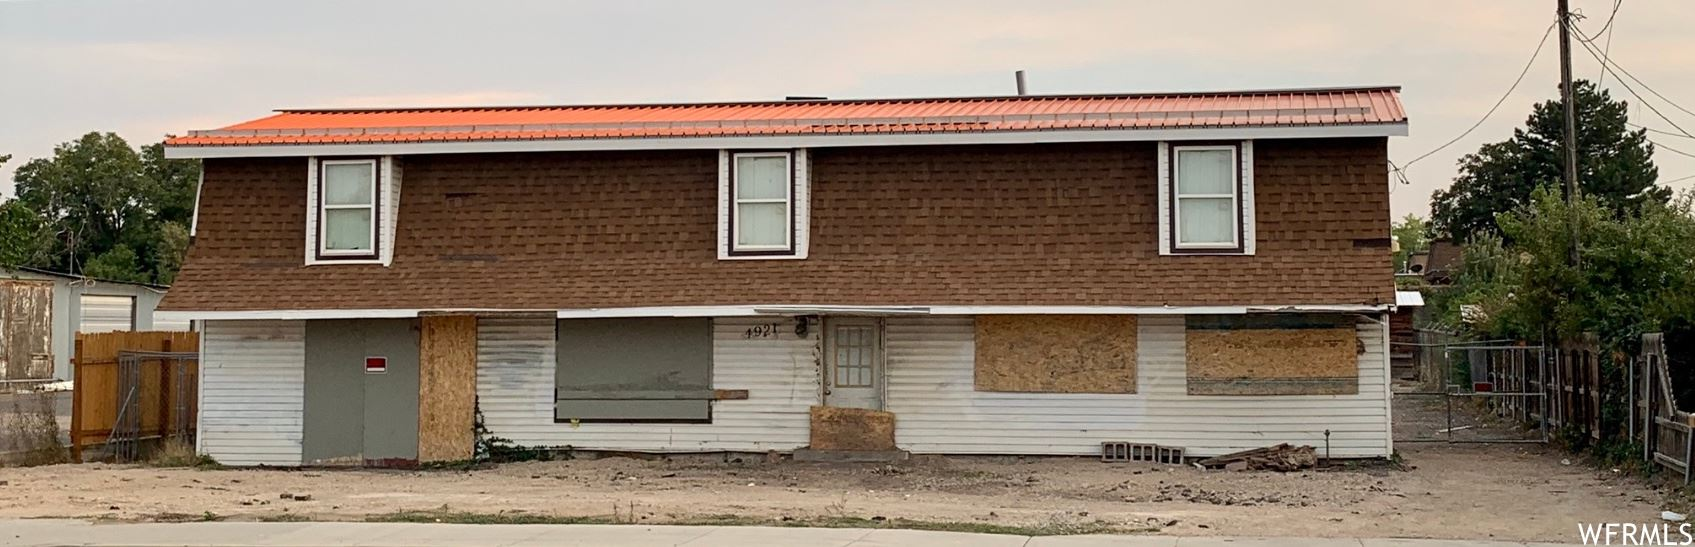 Photo of 4945 W 3500 S, West Valley City, UT 84120 (MLS # 1725808)